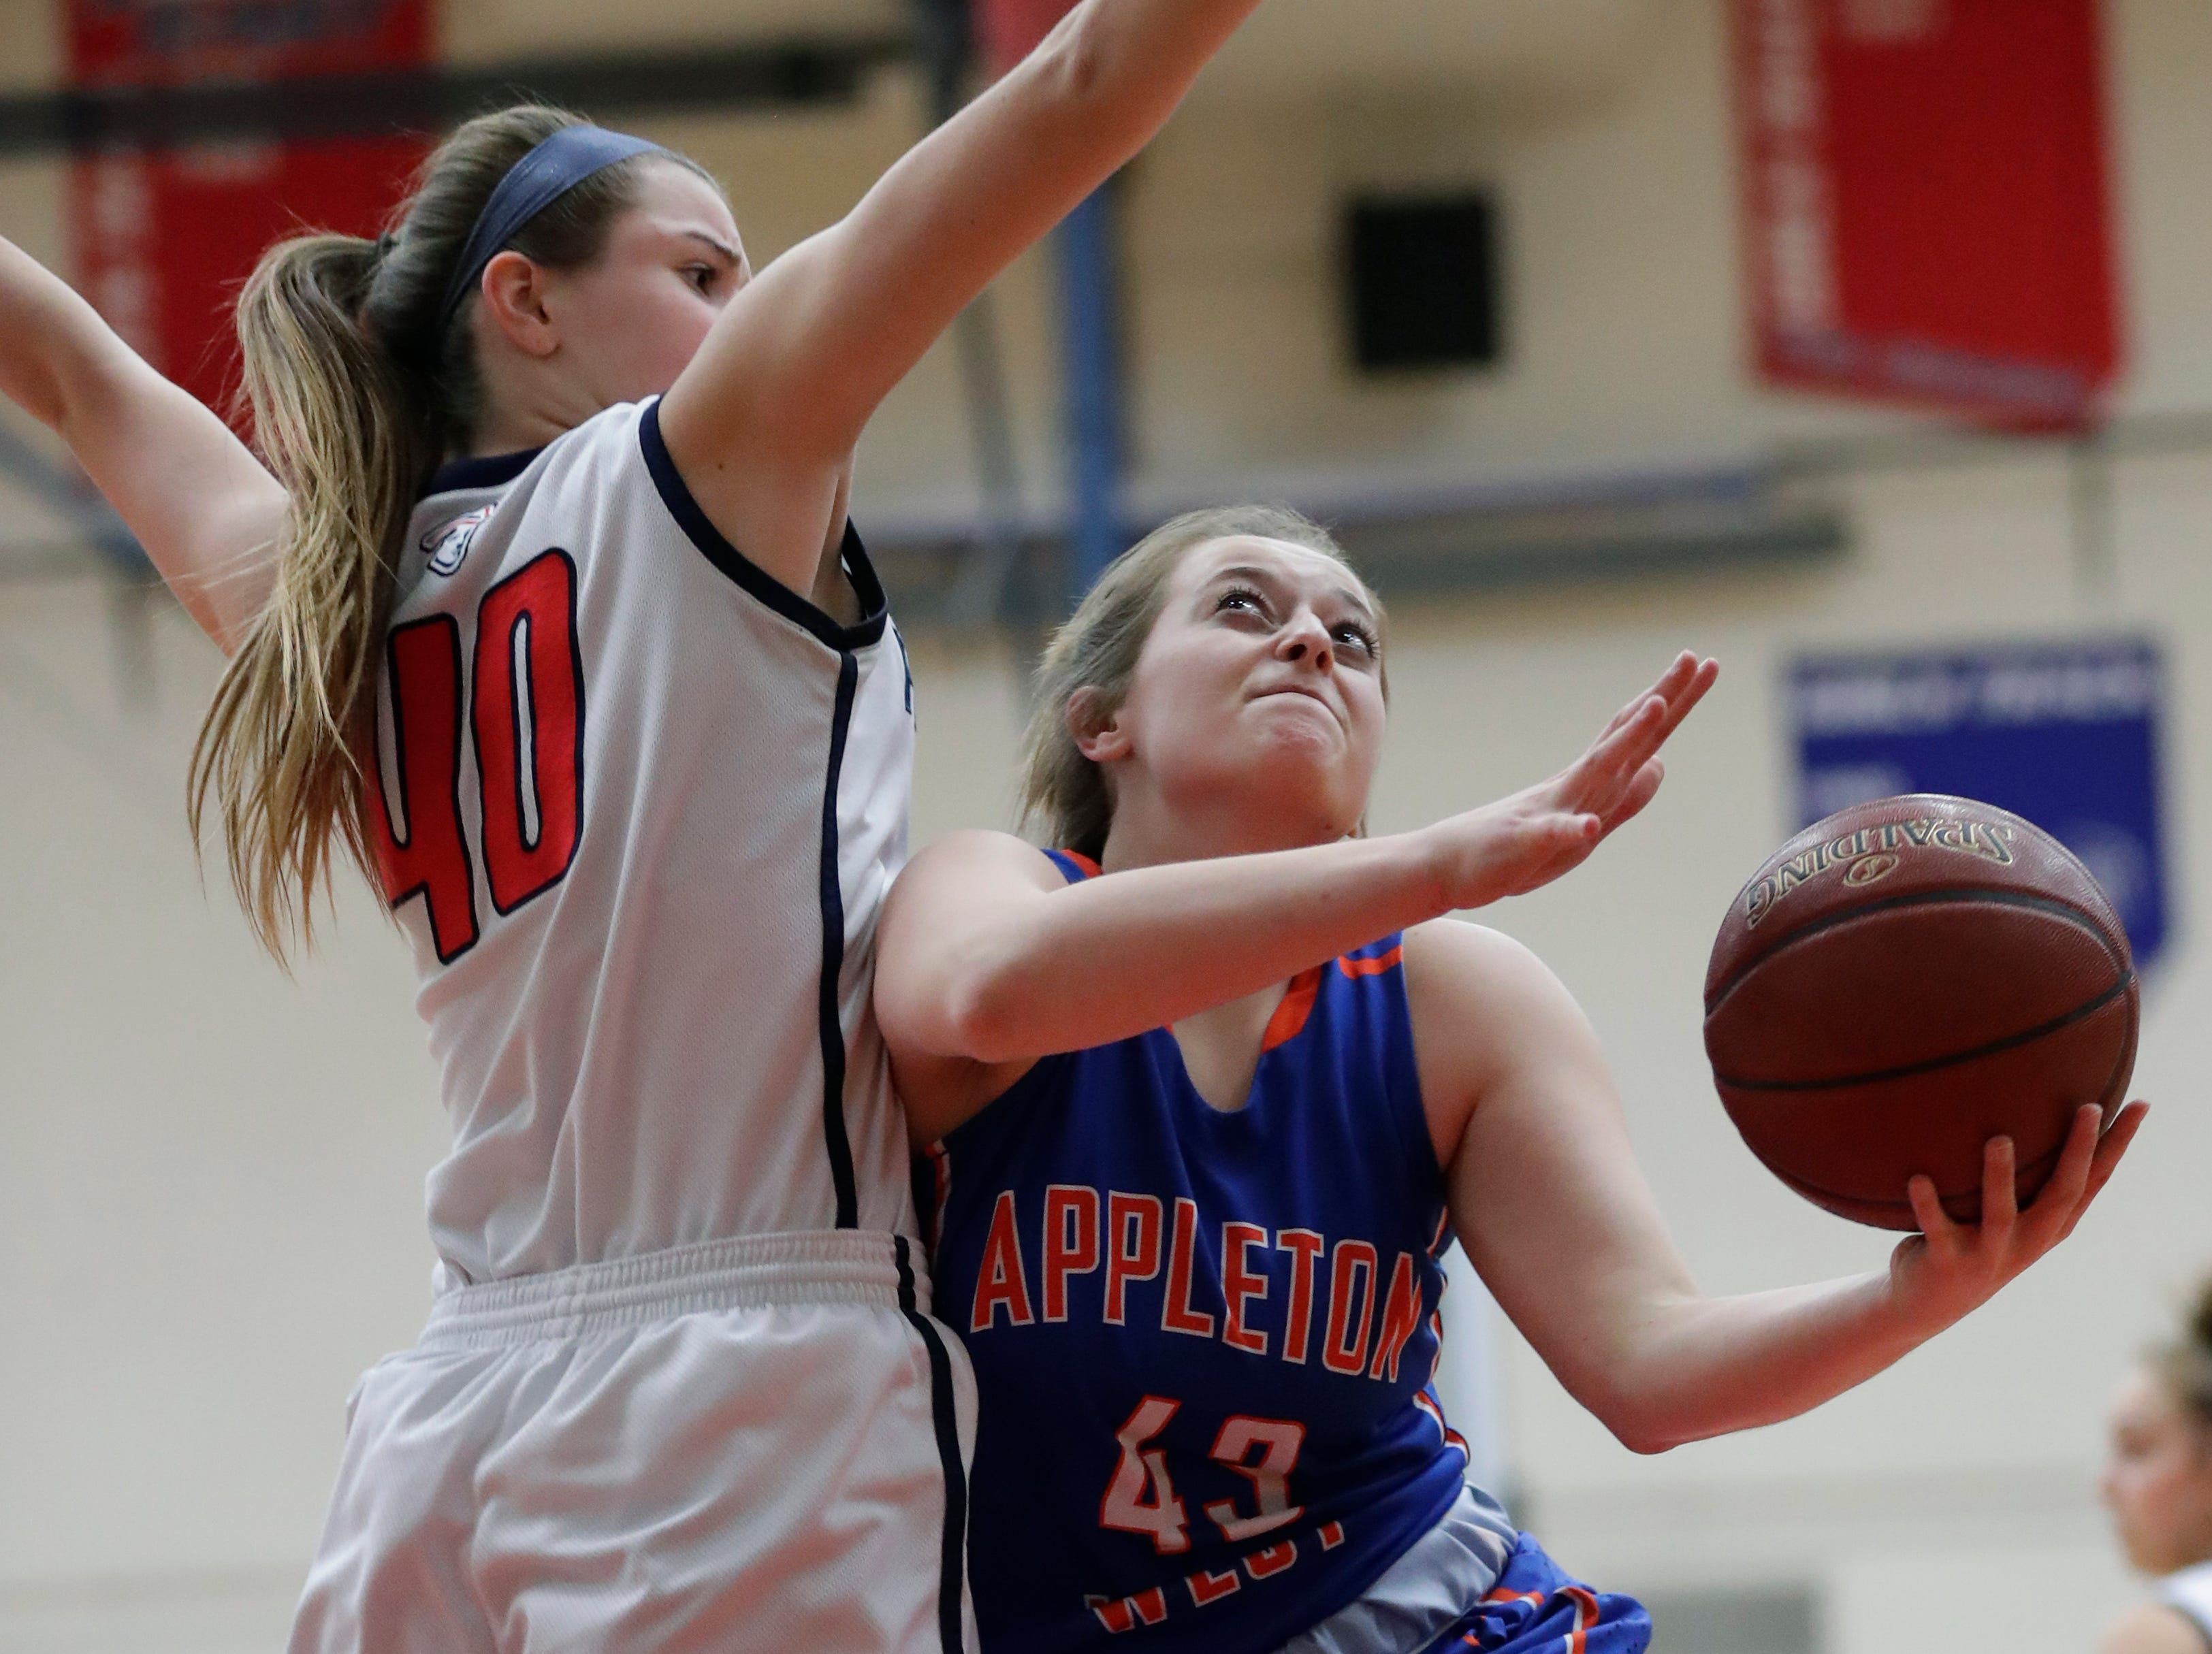 Appleton East High School's Abbie King (40) defends against Appleton West High School's Jenna Hoffman (43) during their girls basketball game Friday, January 11, 2019, at Appleton East High School in Appleton, Wis. 